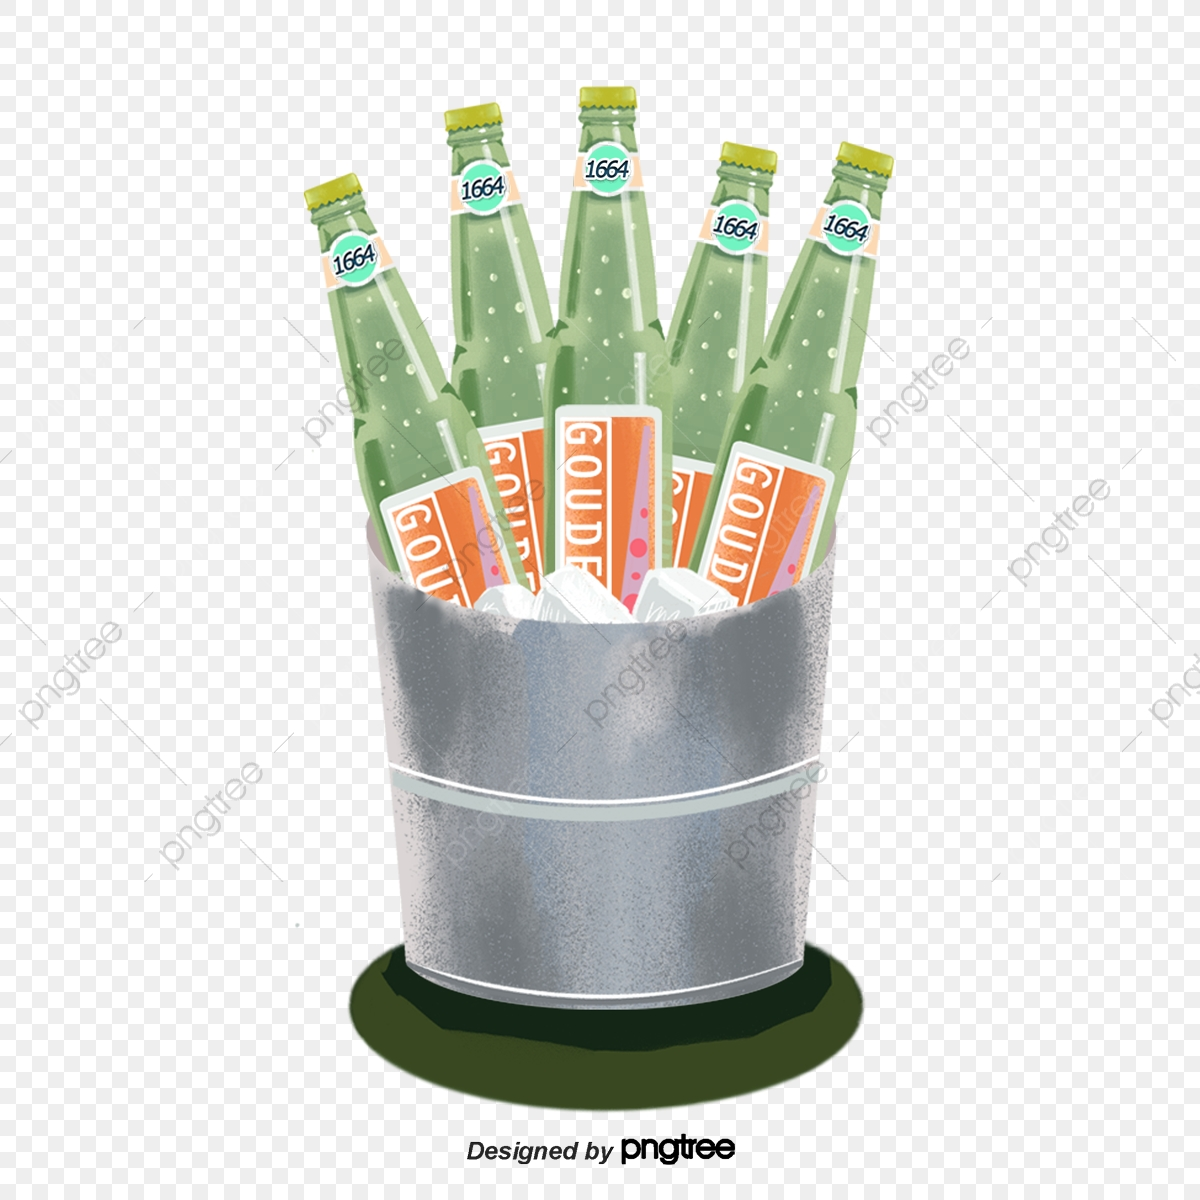 Green Iced Beer Ice Barrel An Ice Bucket Iced Beer Png